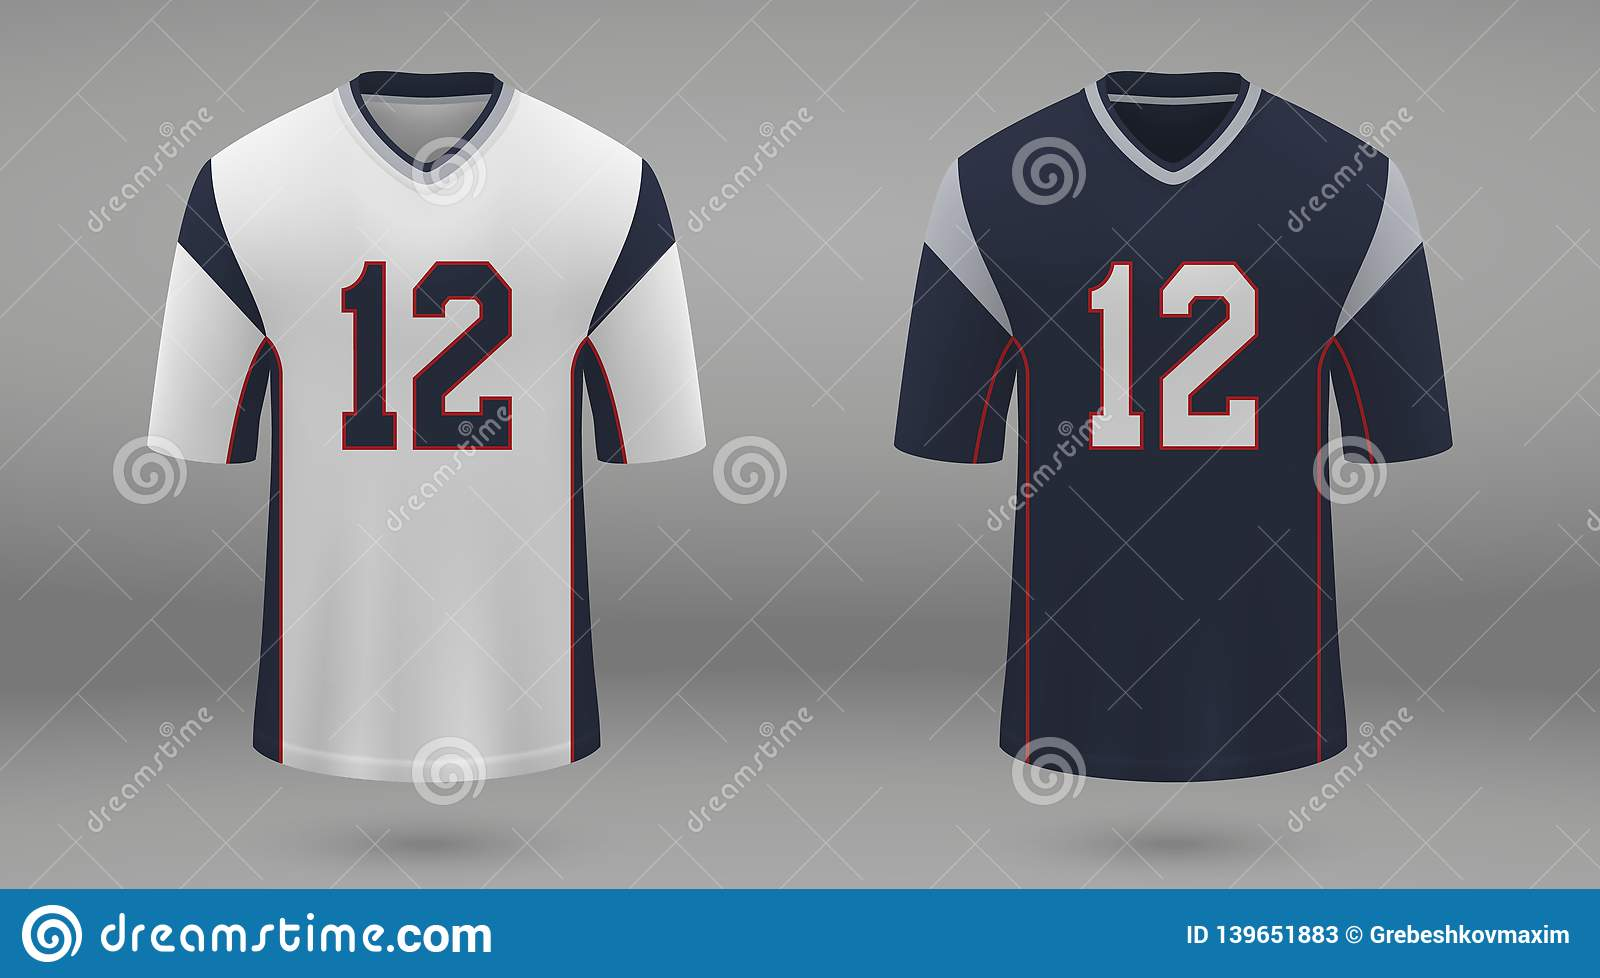 buy popular c8d74 10c30 Realistic American Football Jersey Stock Illustration ...